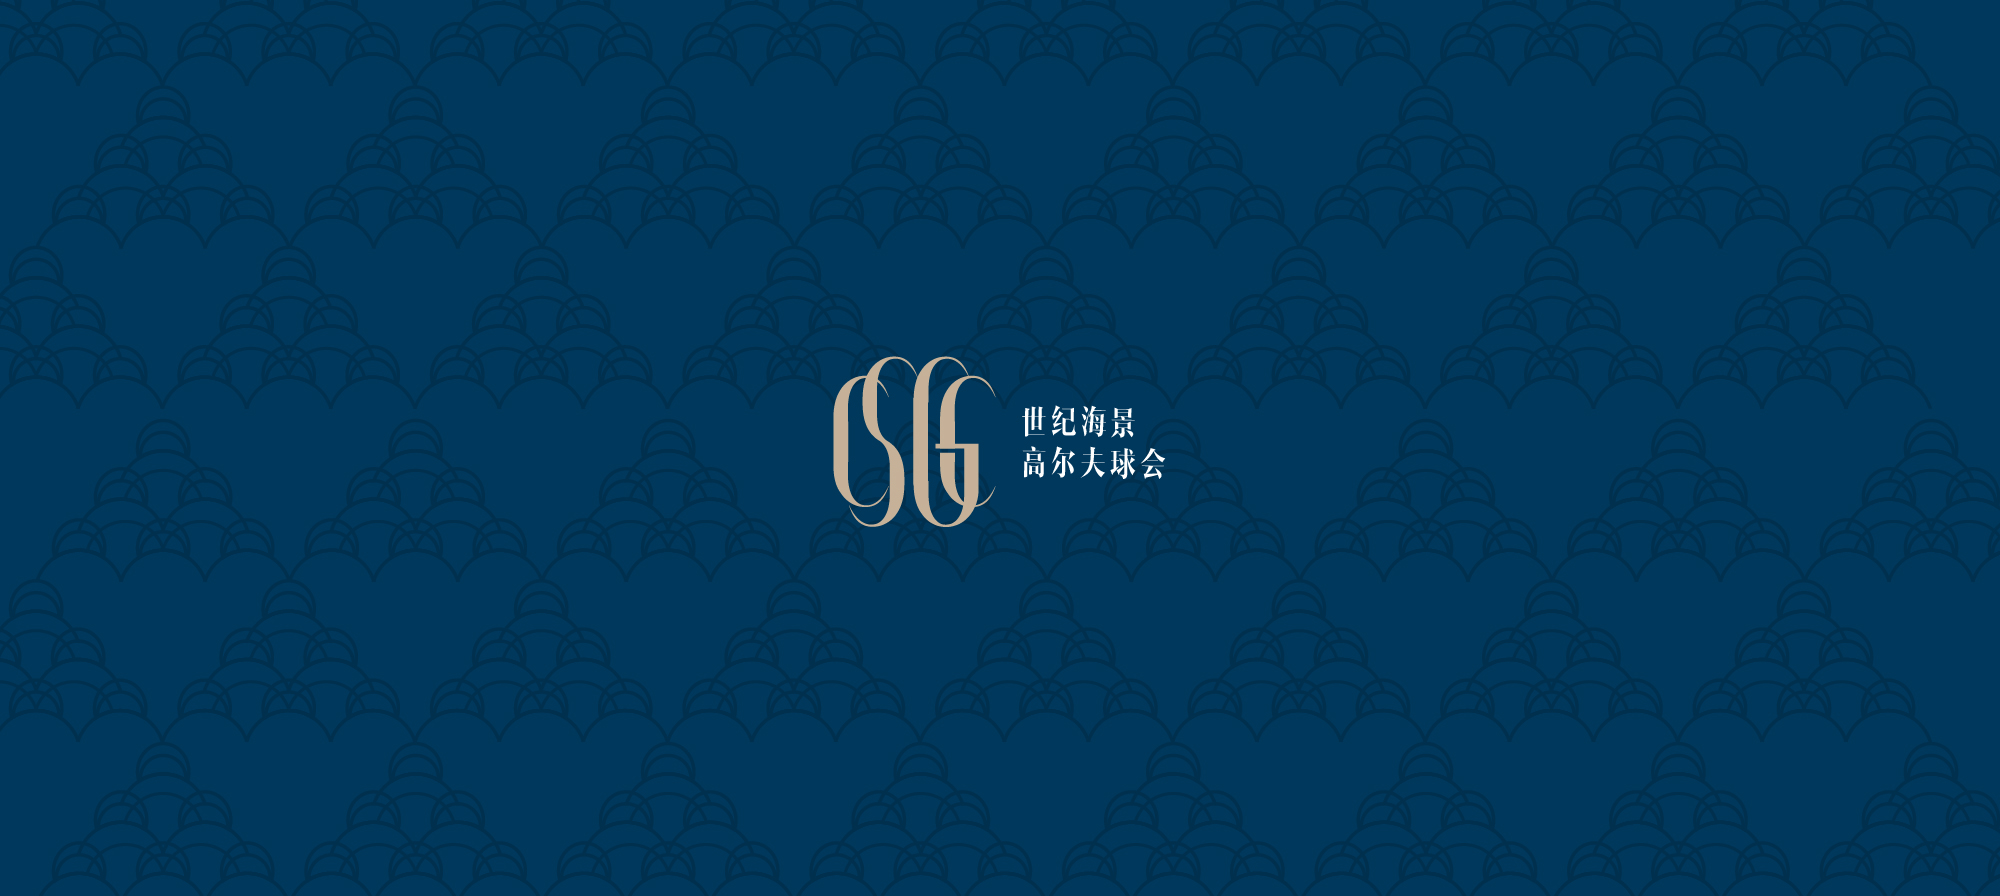 all_logo_behance_151021-24